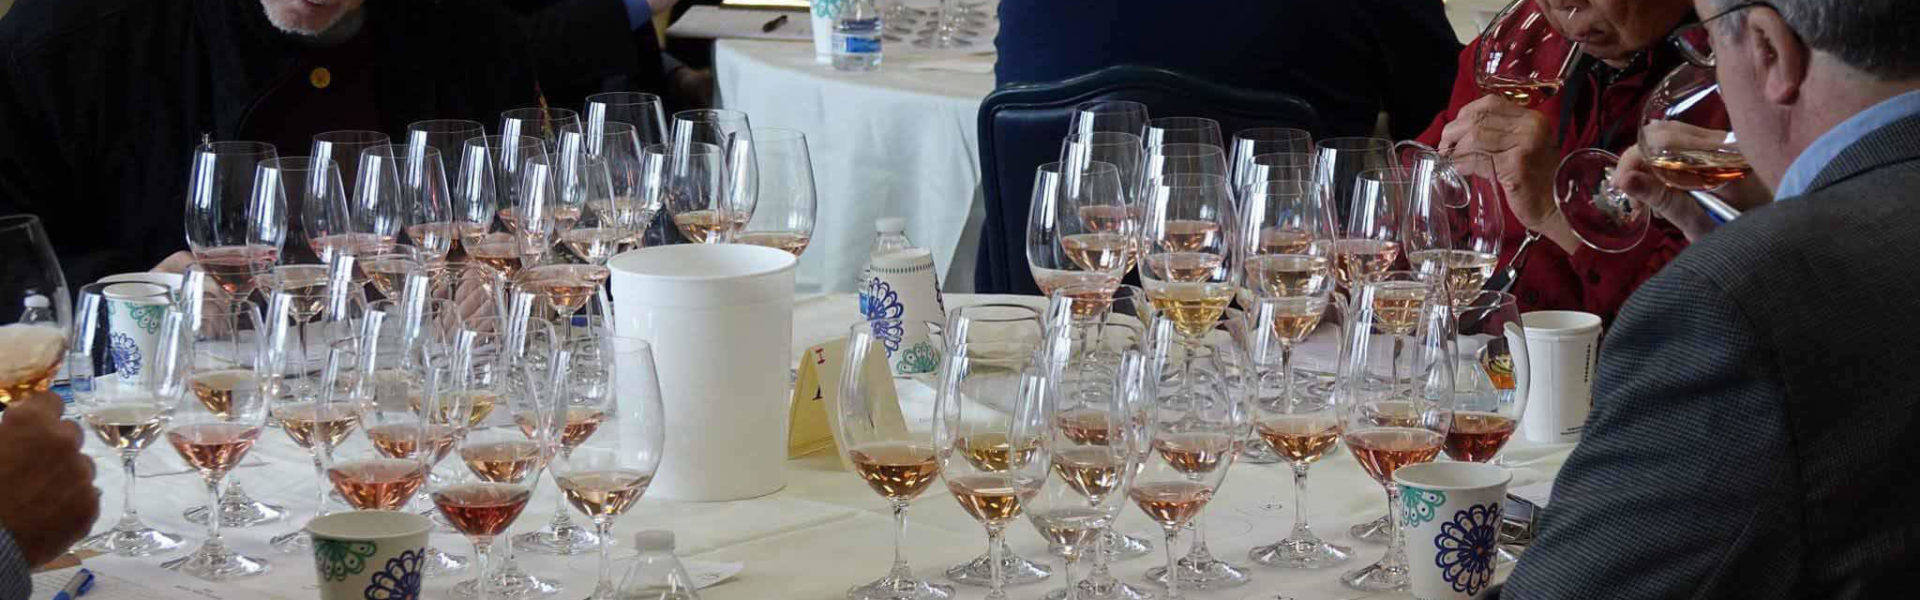 Panelists evaluate selections at Seattle Wine Awards